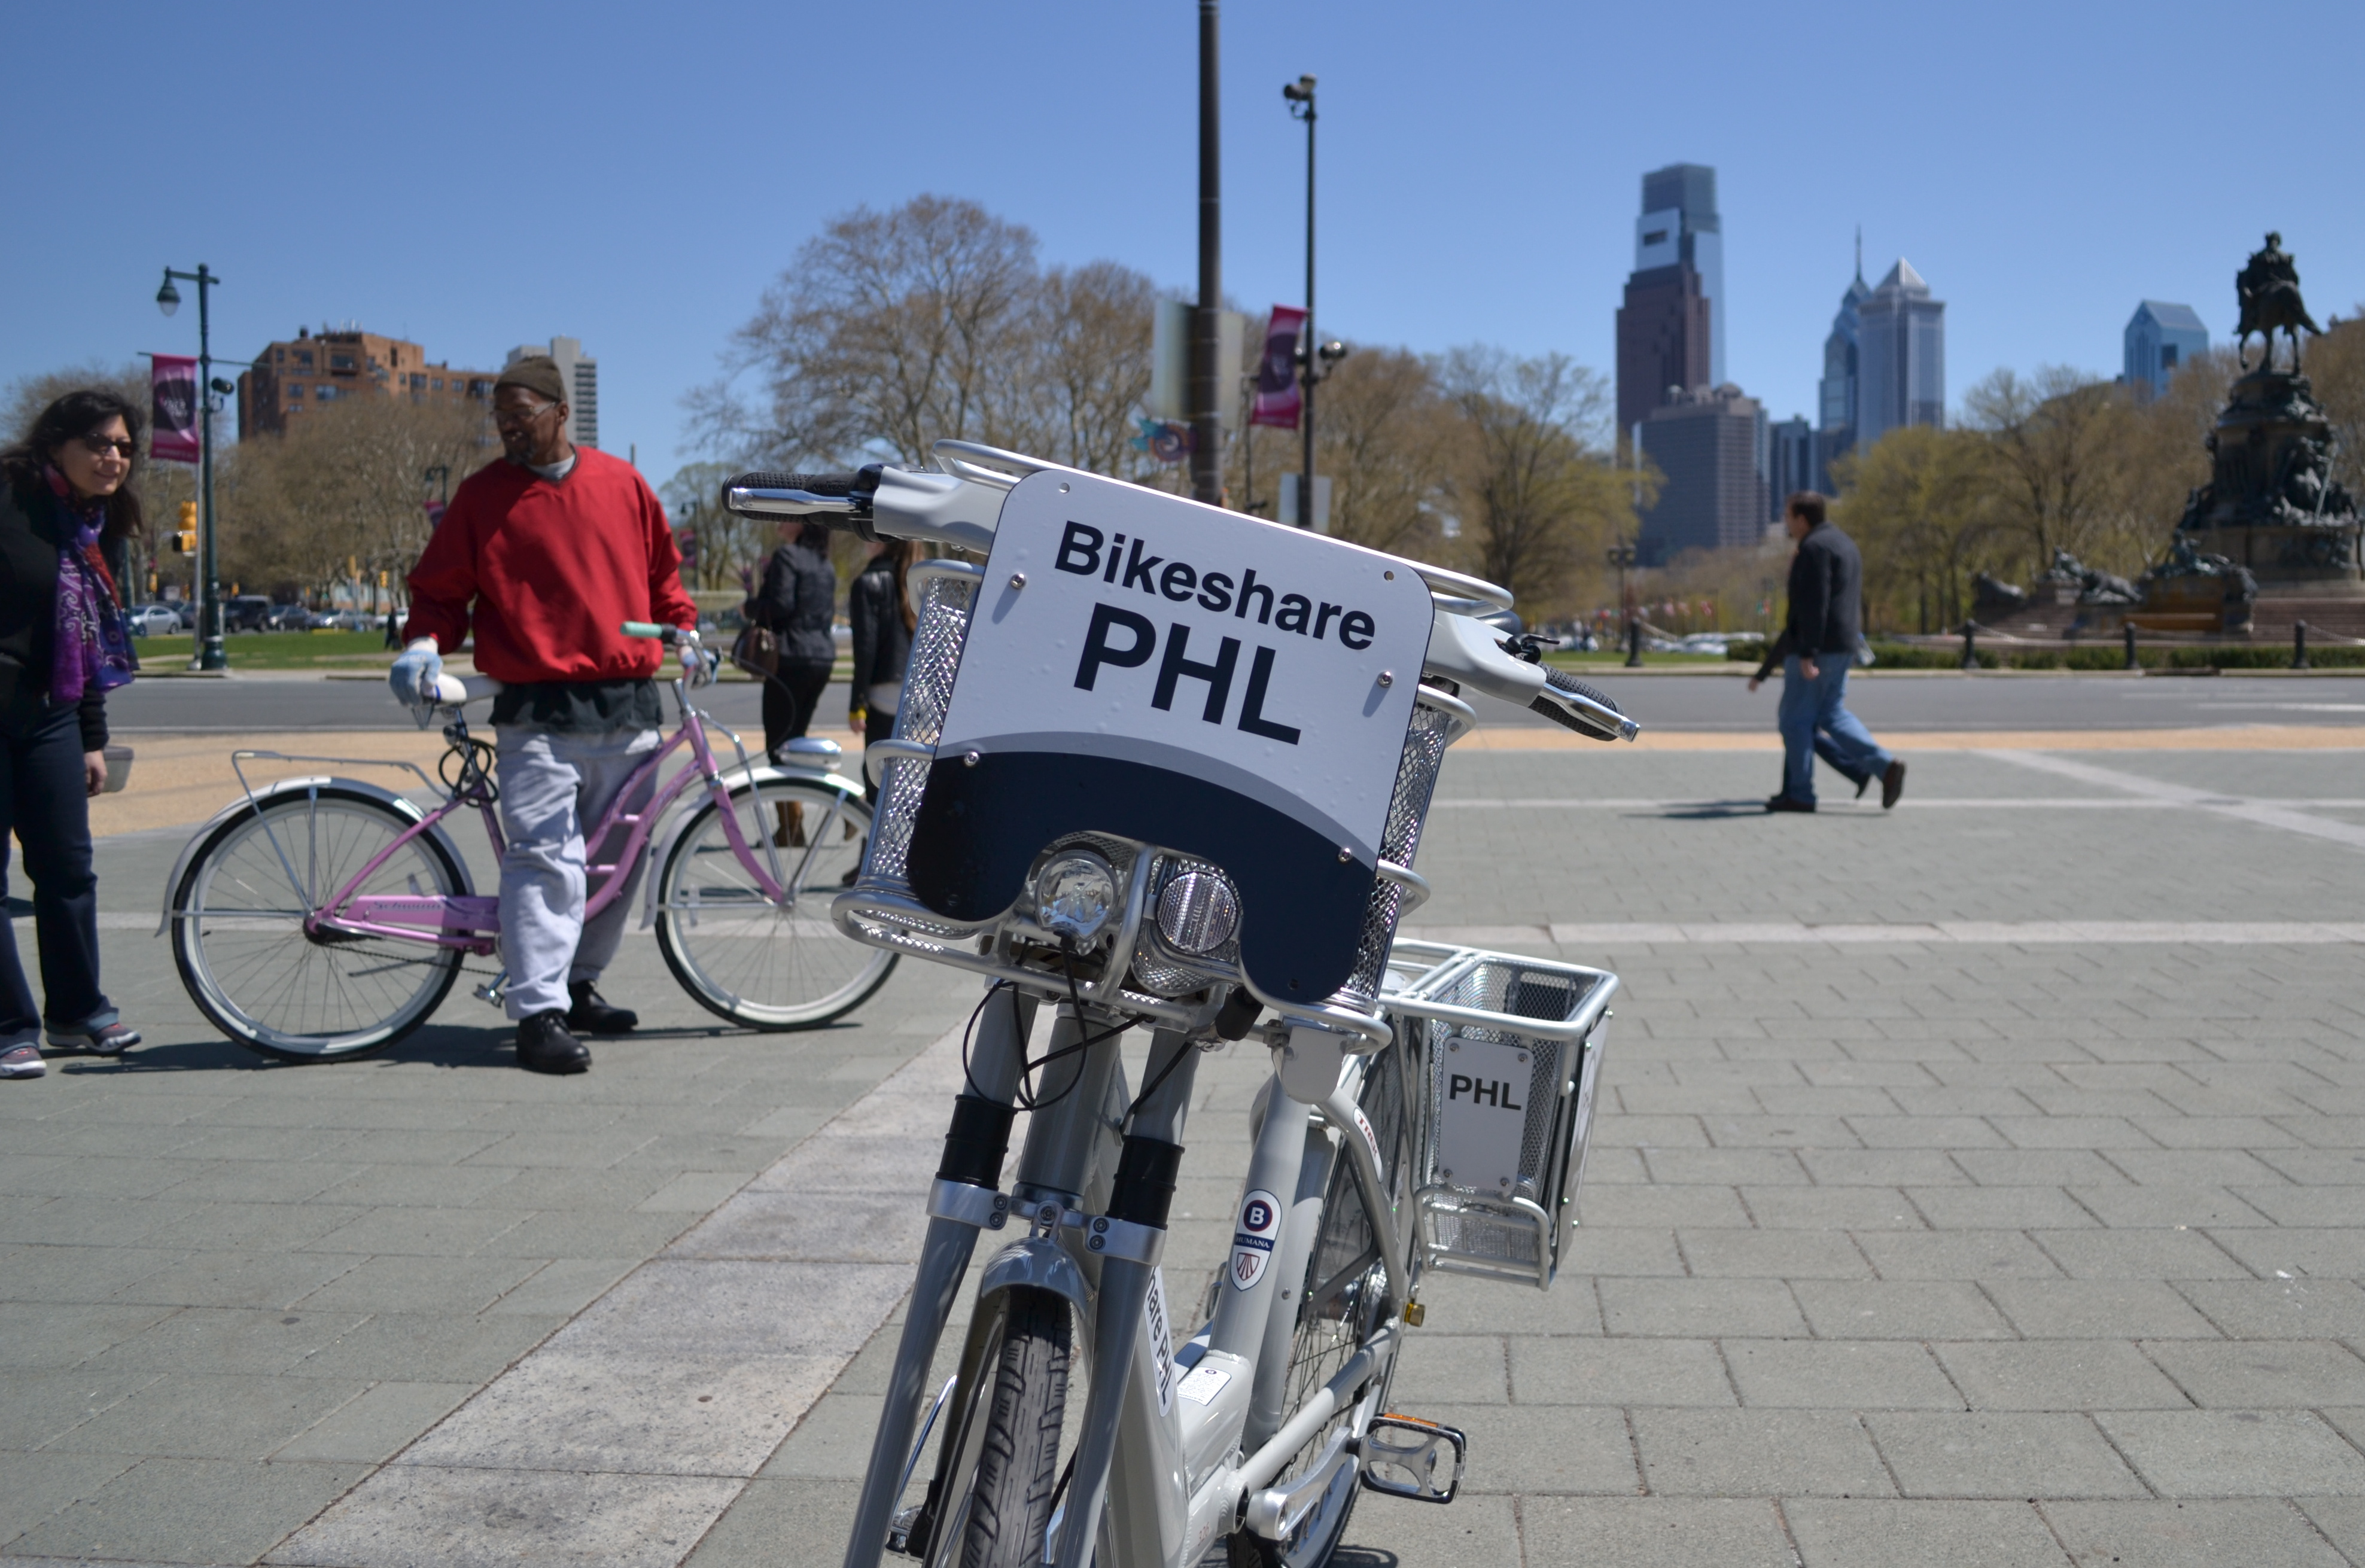 Philly's bike share system is set to roll out in spring 2015